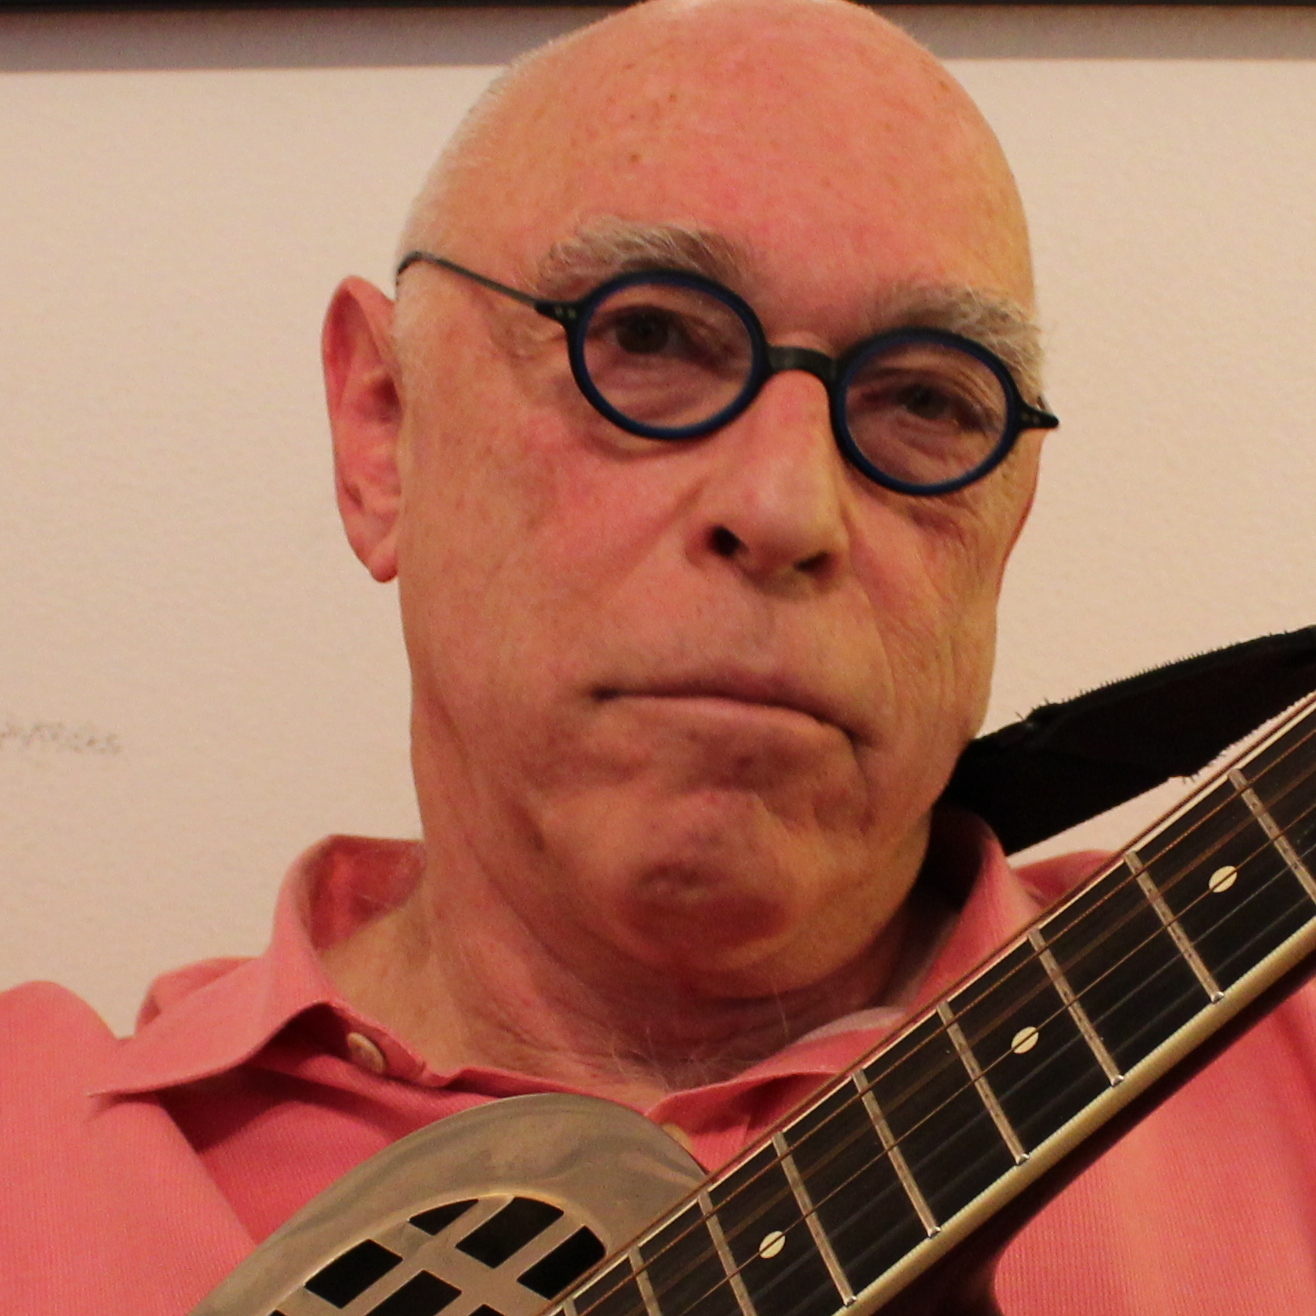 At age 71, nearly 50 years after his first album, guitarist Harry Taussig is releasing a follow-up -- and making his concert debut at South by Southwest.